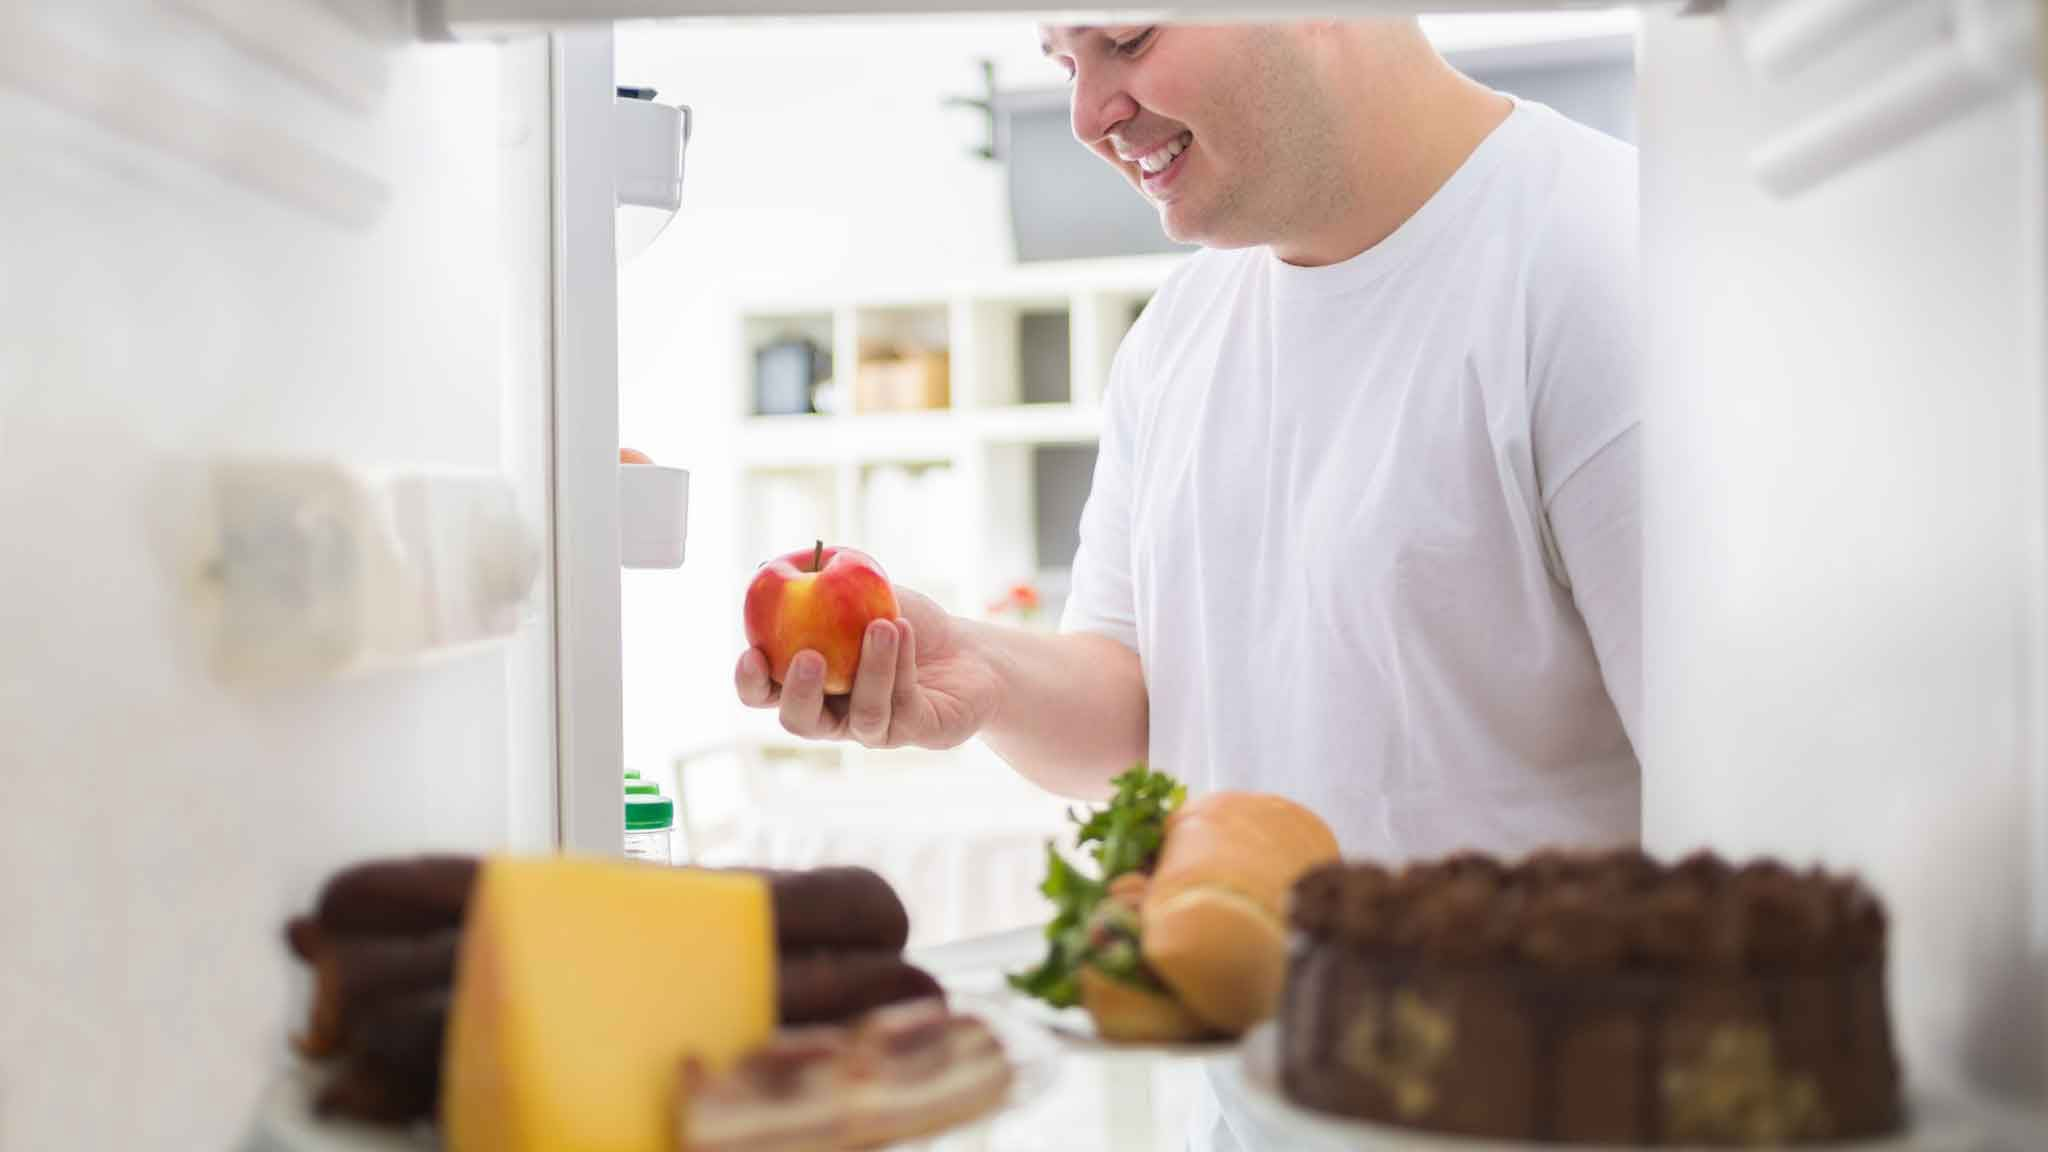 man in the fridge picking up an apple instead of candy and cakes